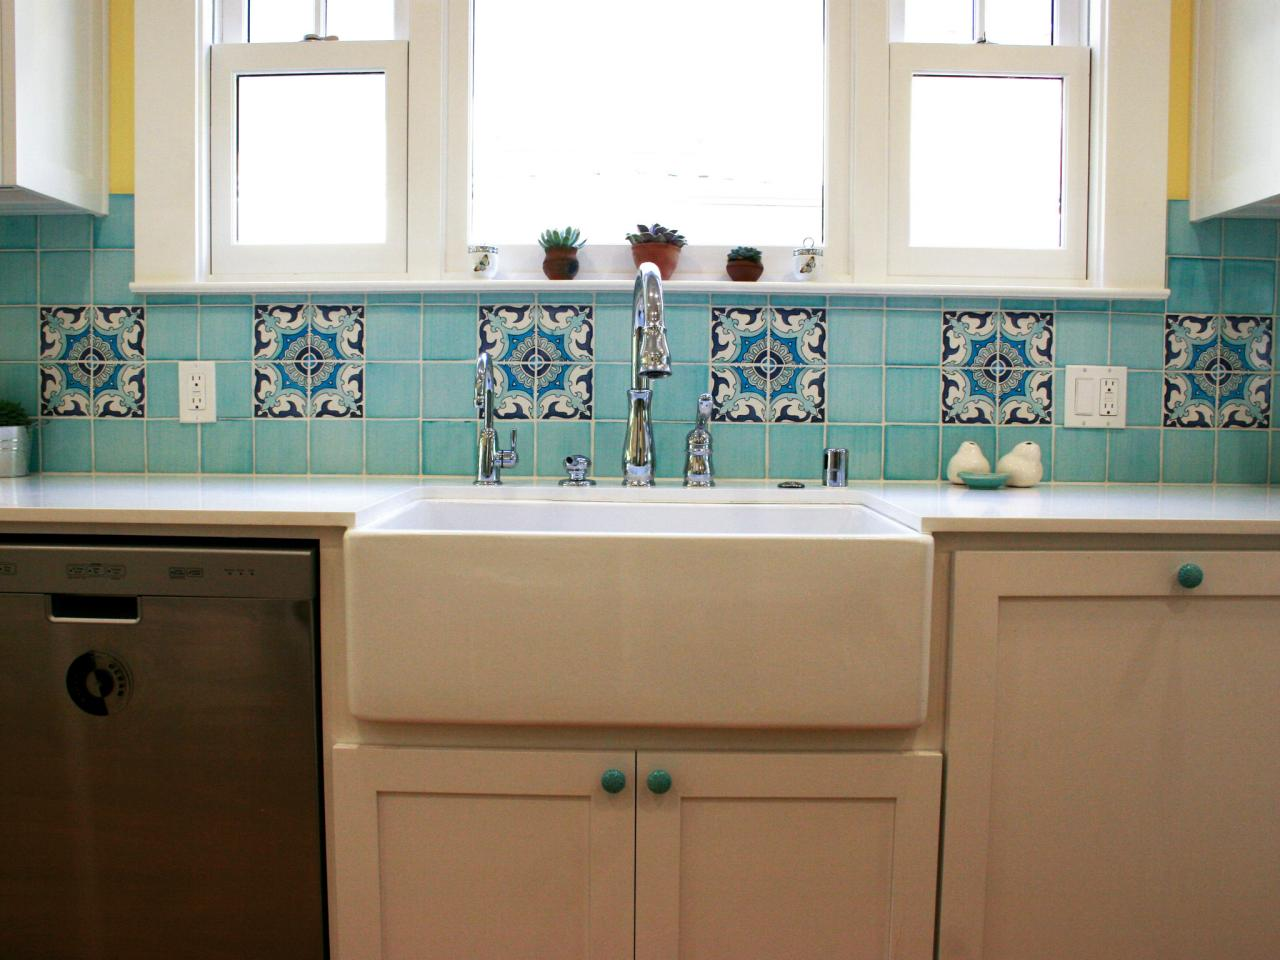 ceramic tile backsplashes: pictures, ideas & tips from hgtv | hgtv